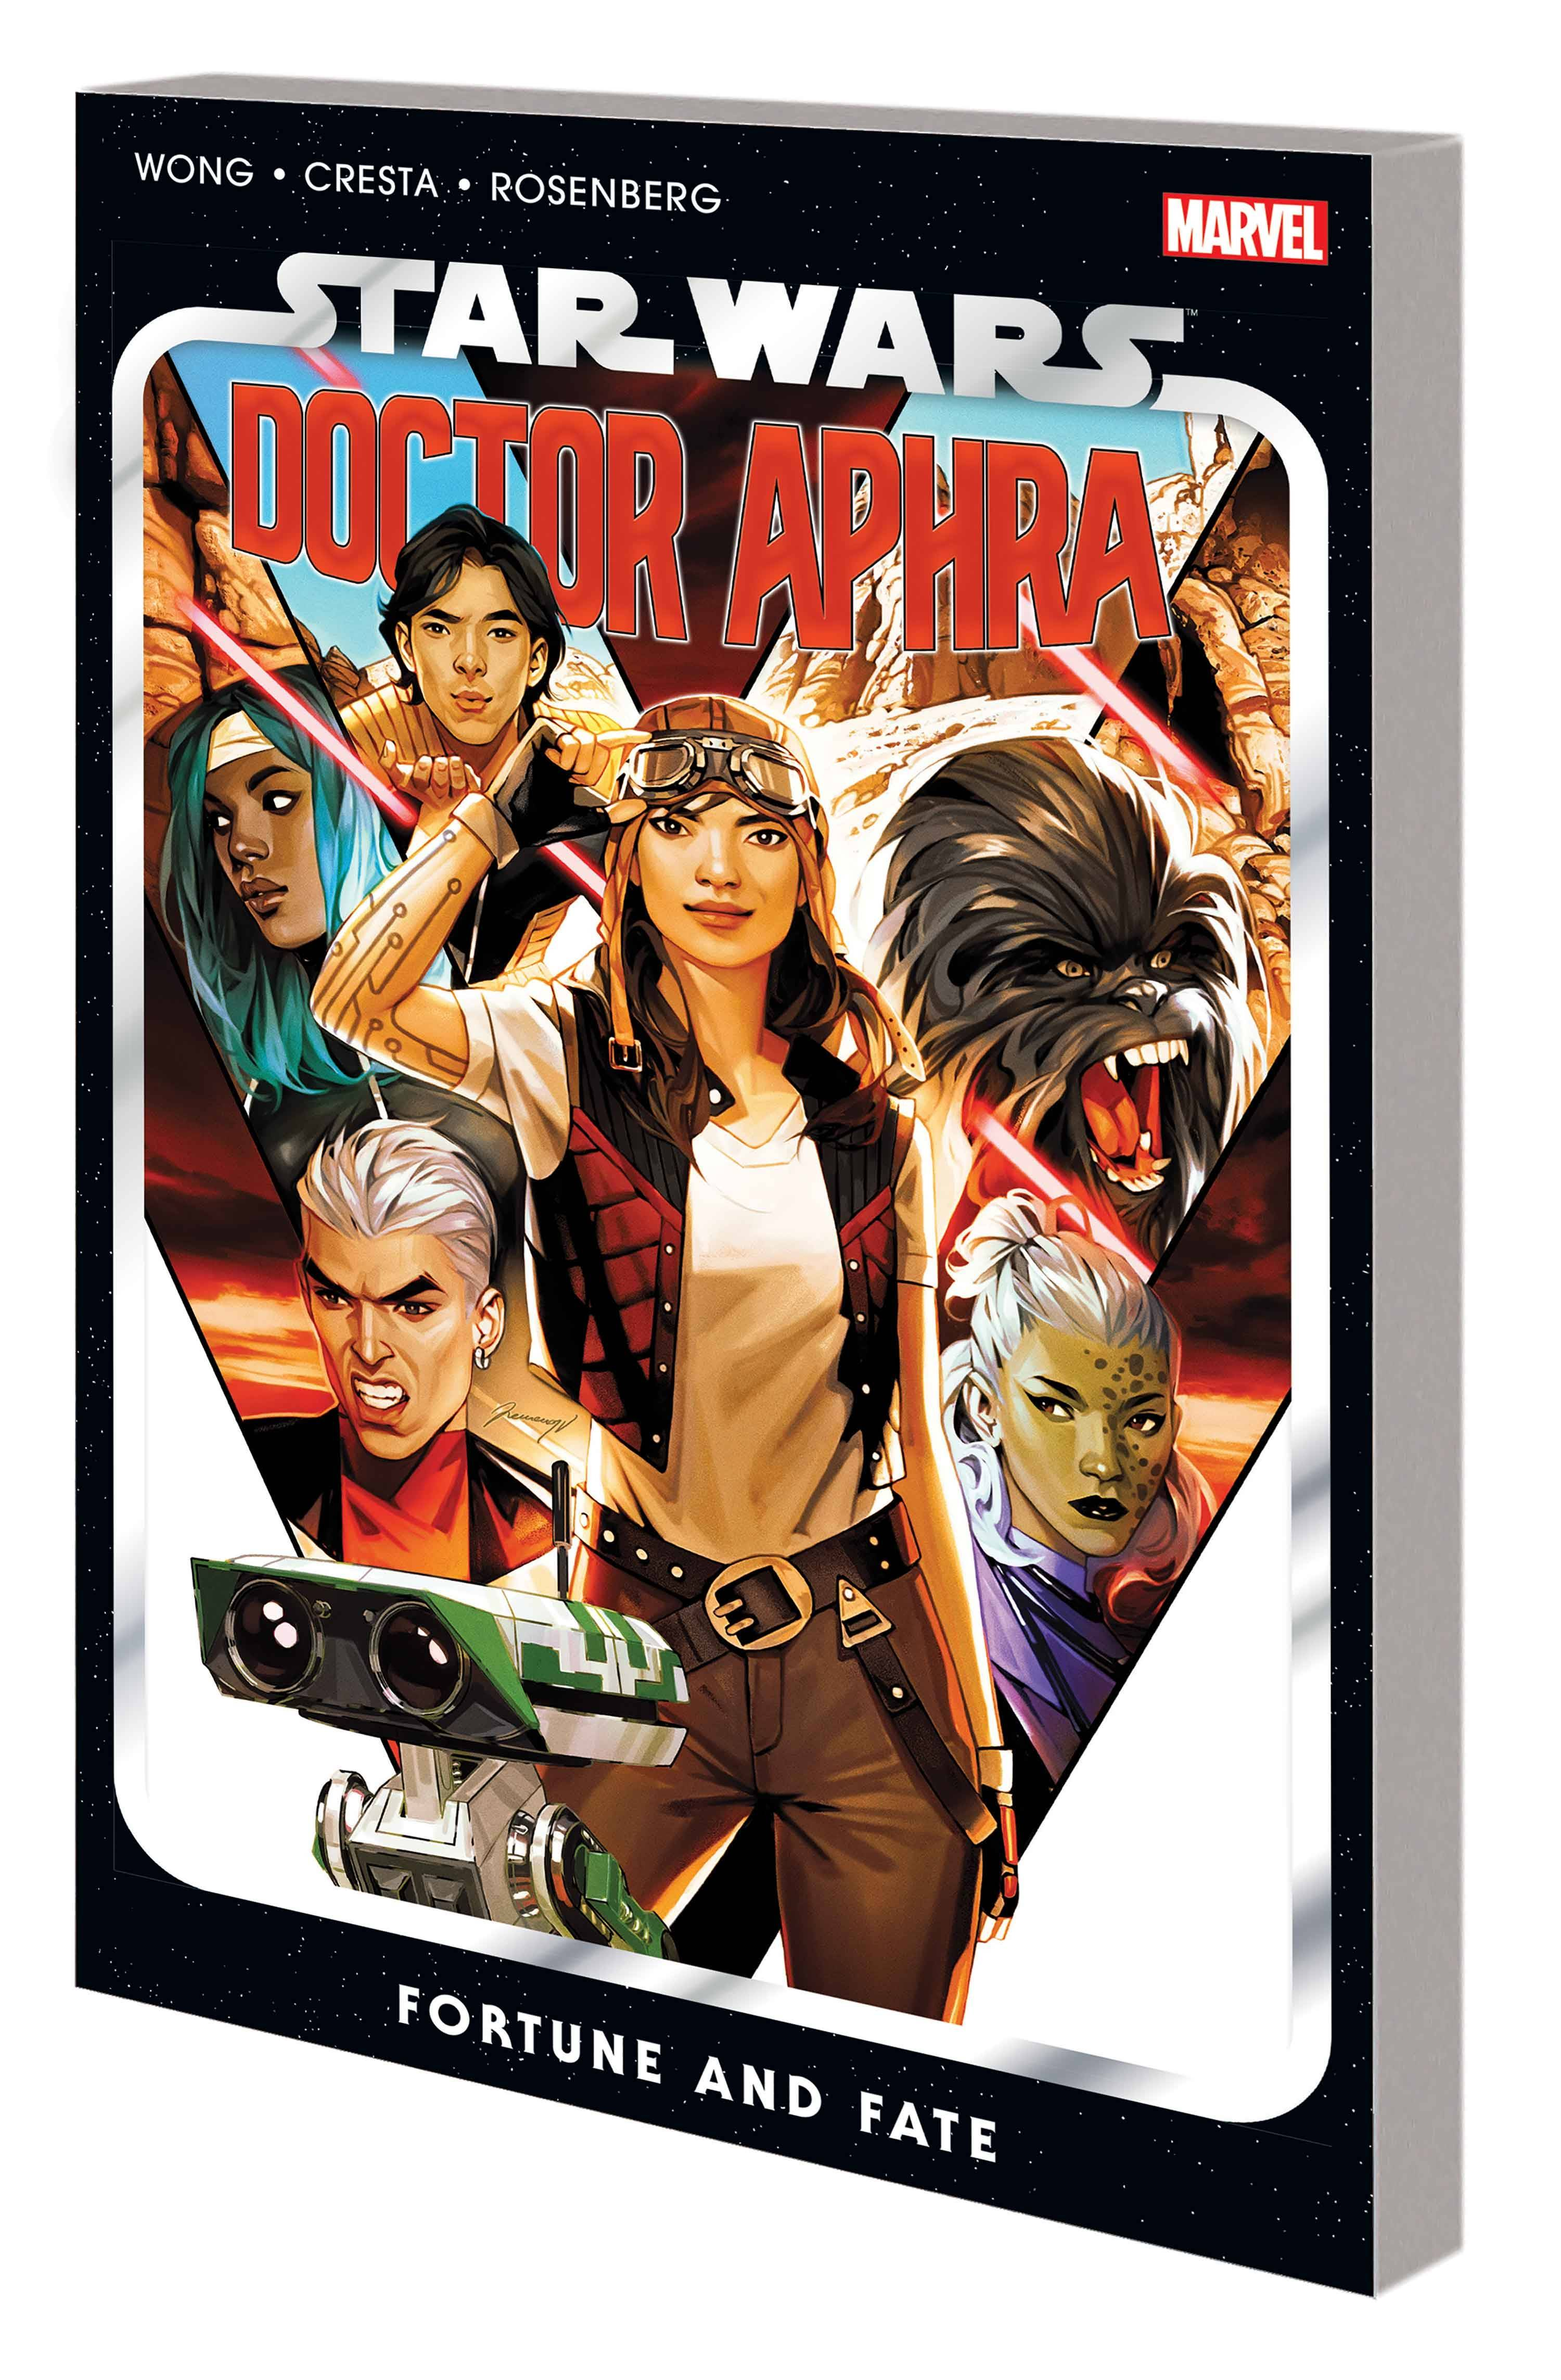 STAR WARS DOCTOR APHRA TP 01 FORTUNE AND FATE